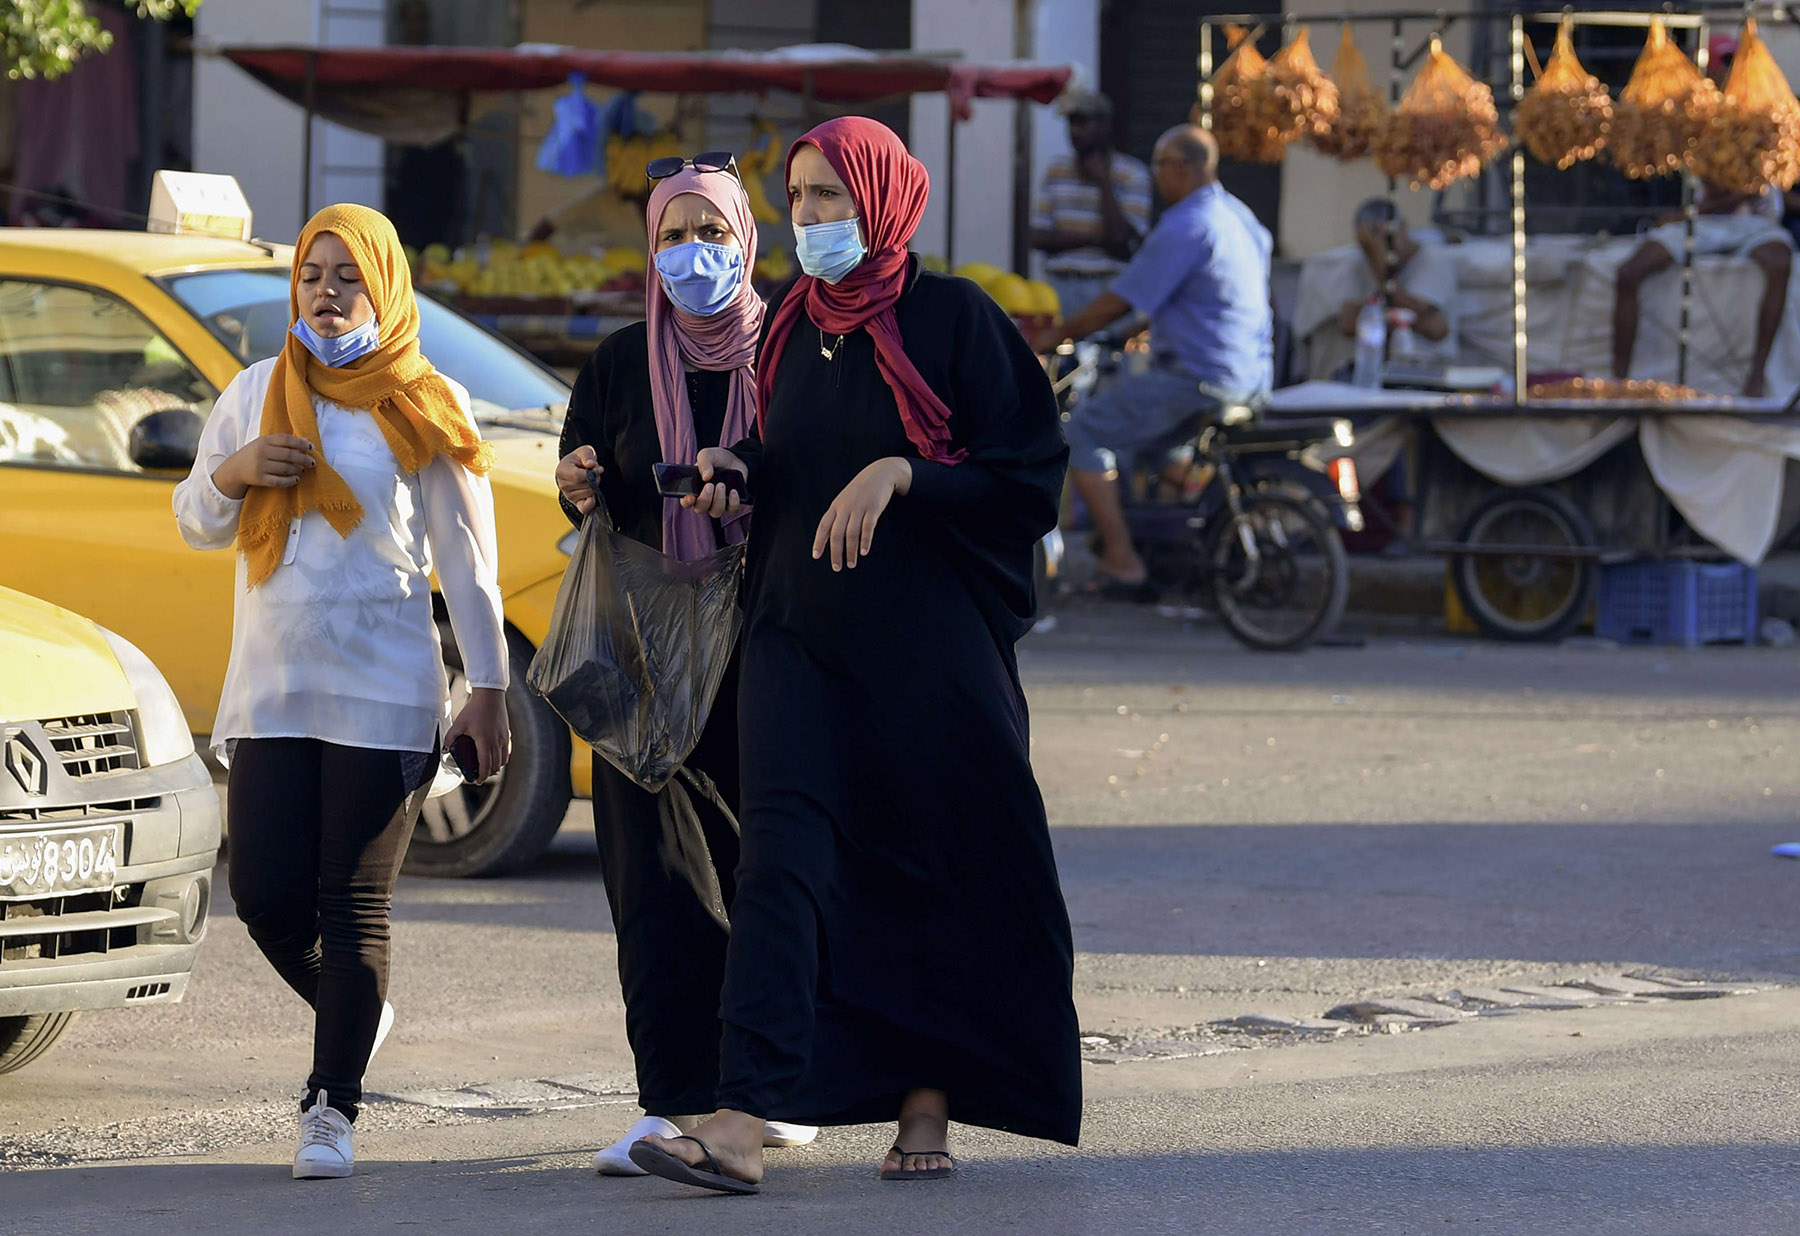 Tunisian women wear face masks for protection against the novel coronavirus at a market in the southwestern Tunisian town of Gabes on August 26. (AFP)